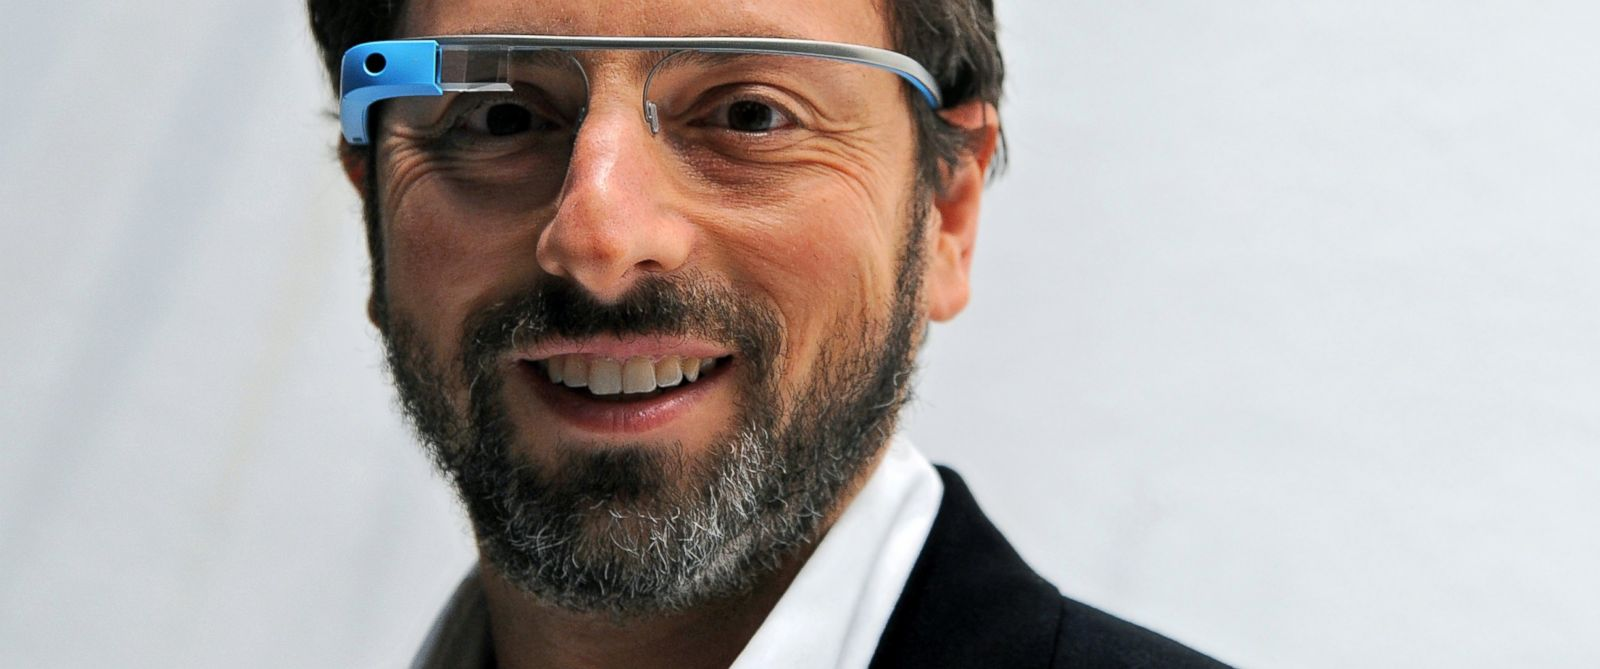 PHOTO: Sergey Brin, co-founder of Google Inc., stands for a photograph while wearing Project Glass internet glasses at the Diane Von Furstenberg fashion show in New York, U.S., on Sept. 9, 2012.